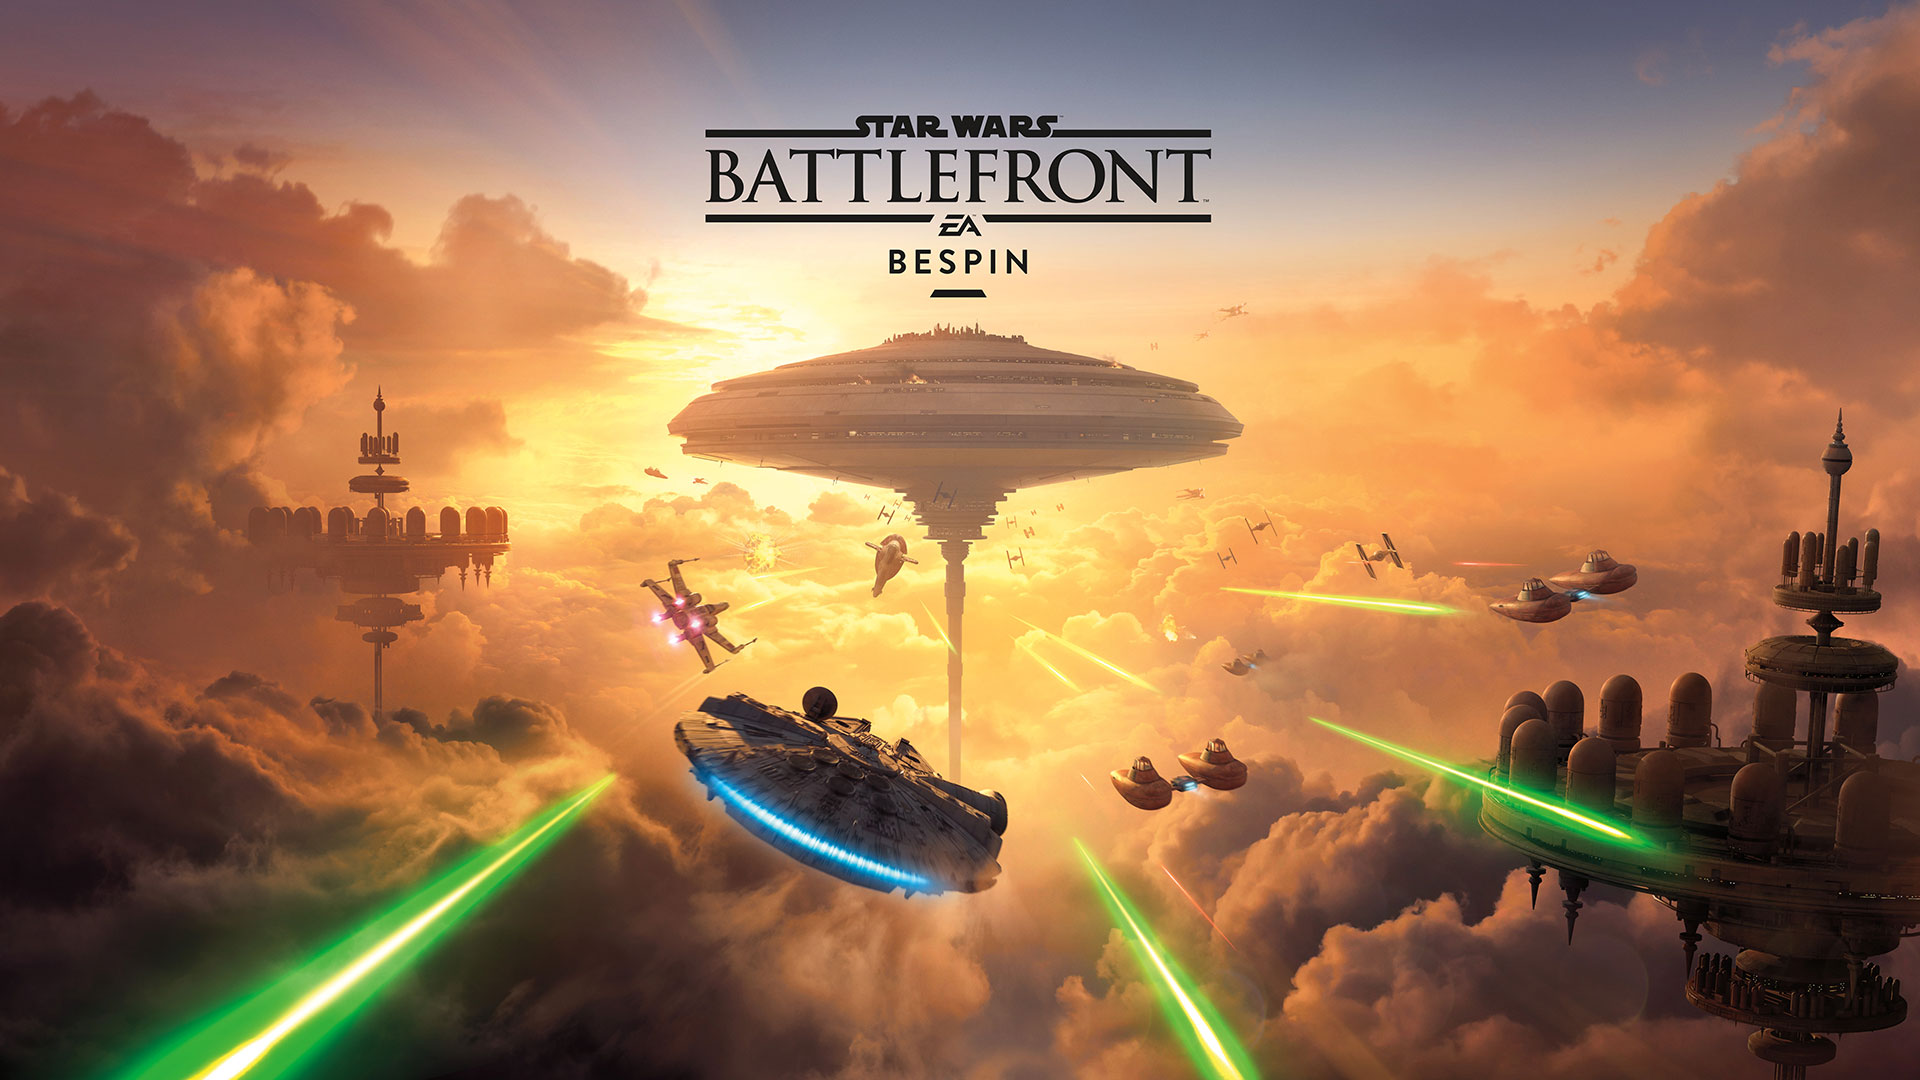 'Star Wars Battlefront' Bespin Trailer Reveals New Maps, Playable Lando Calrissian